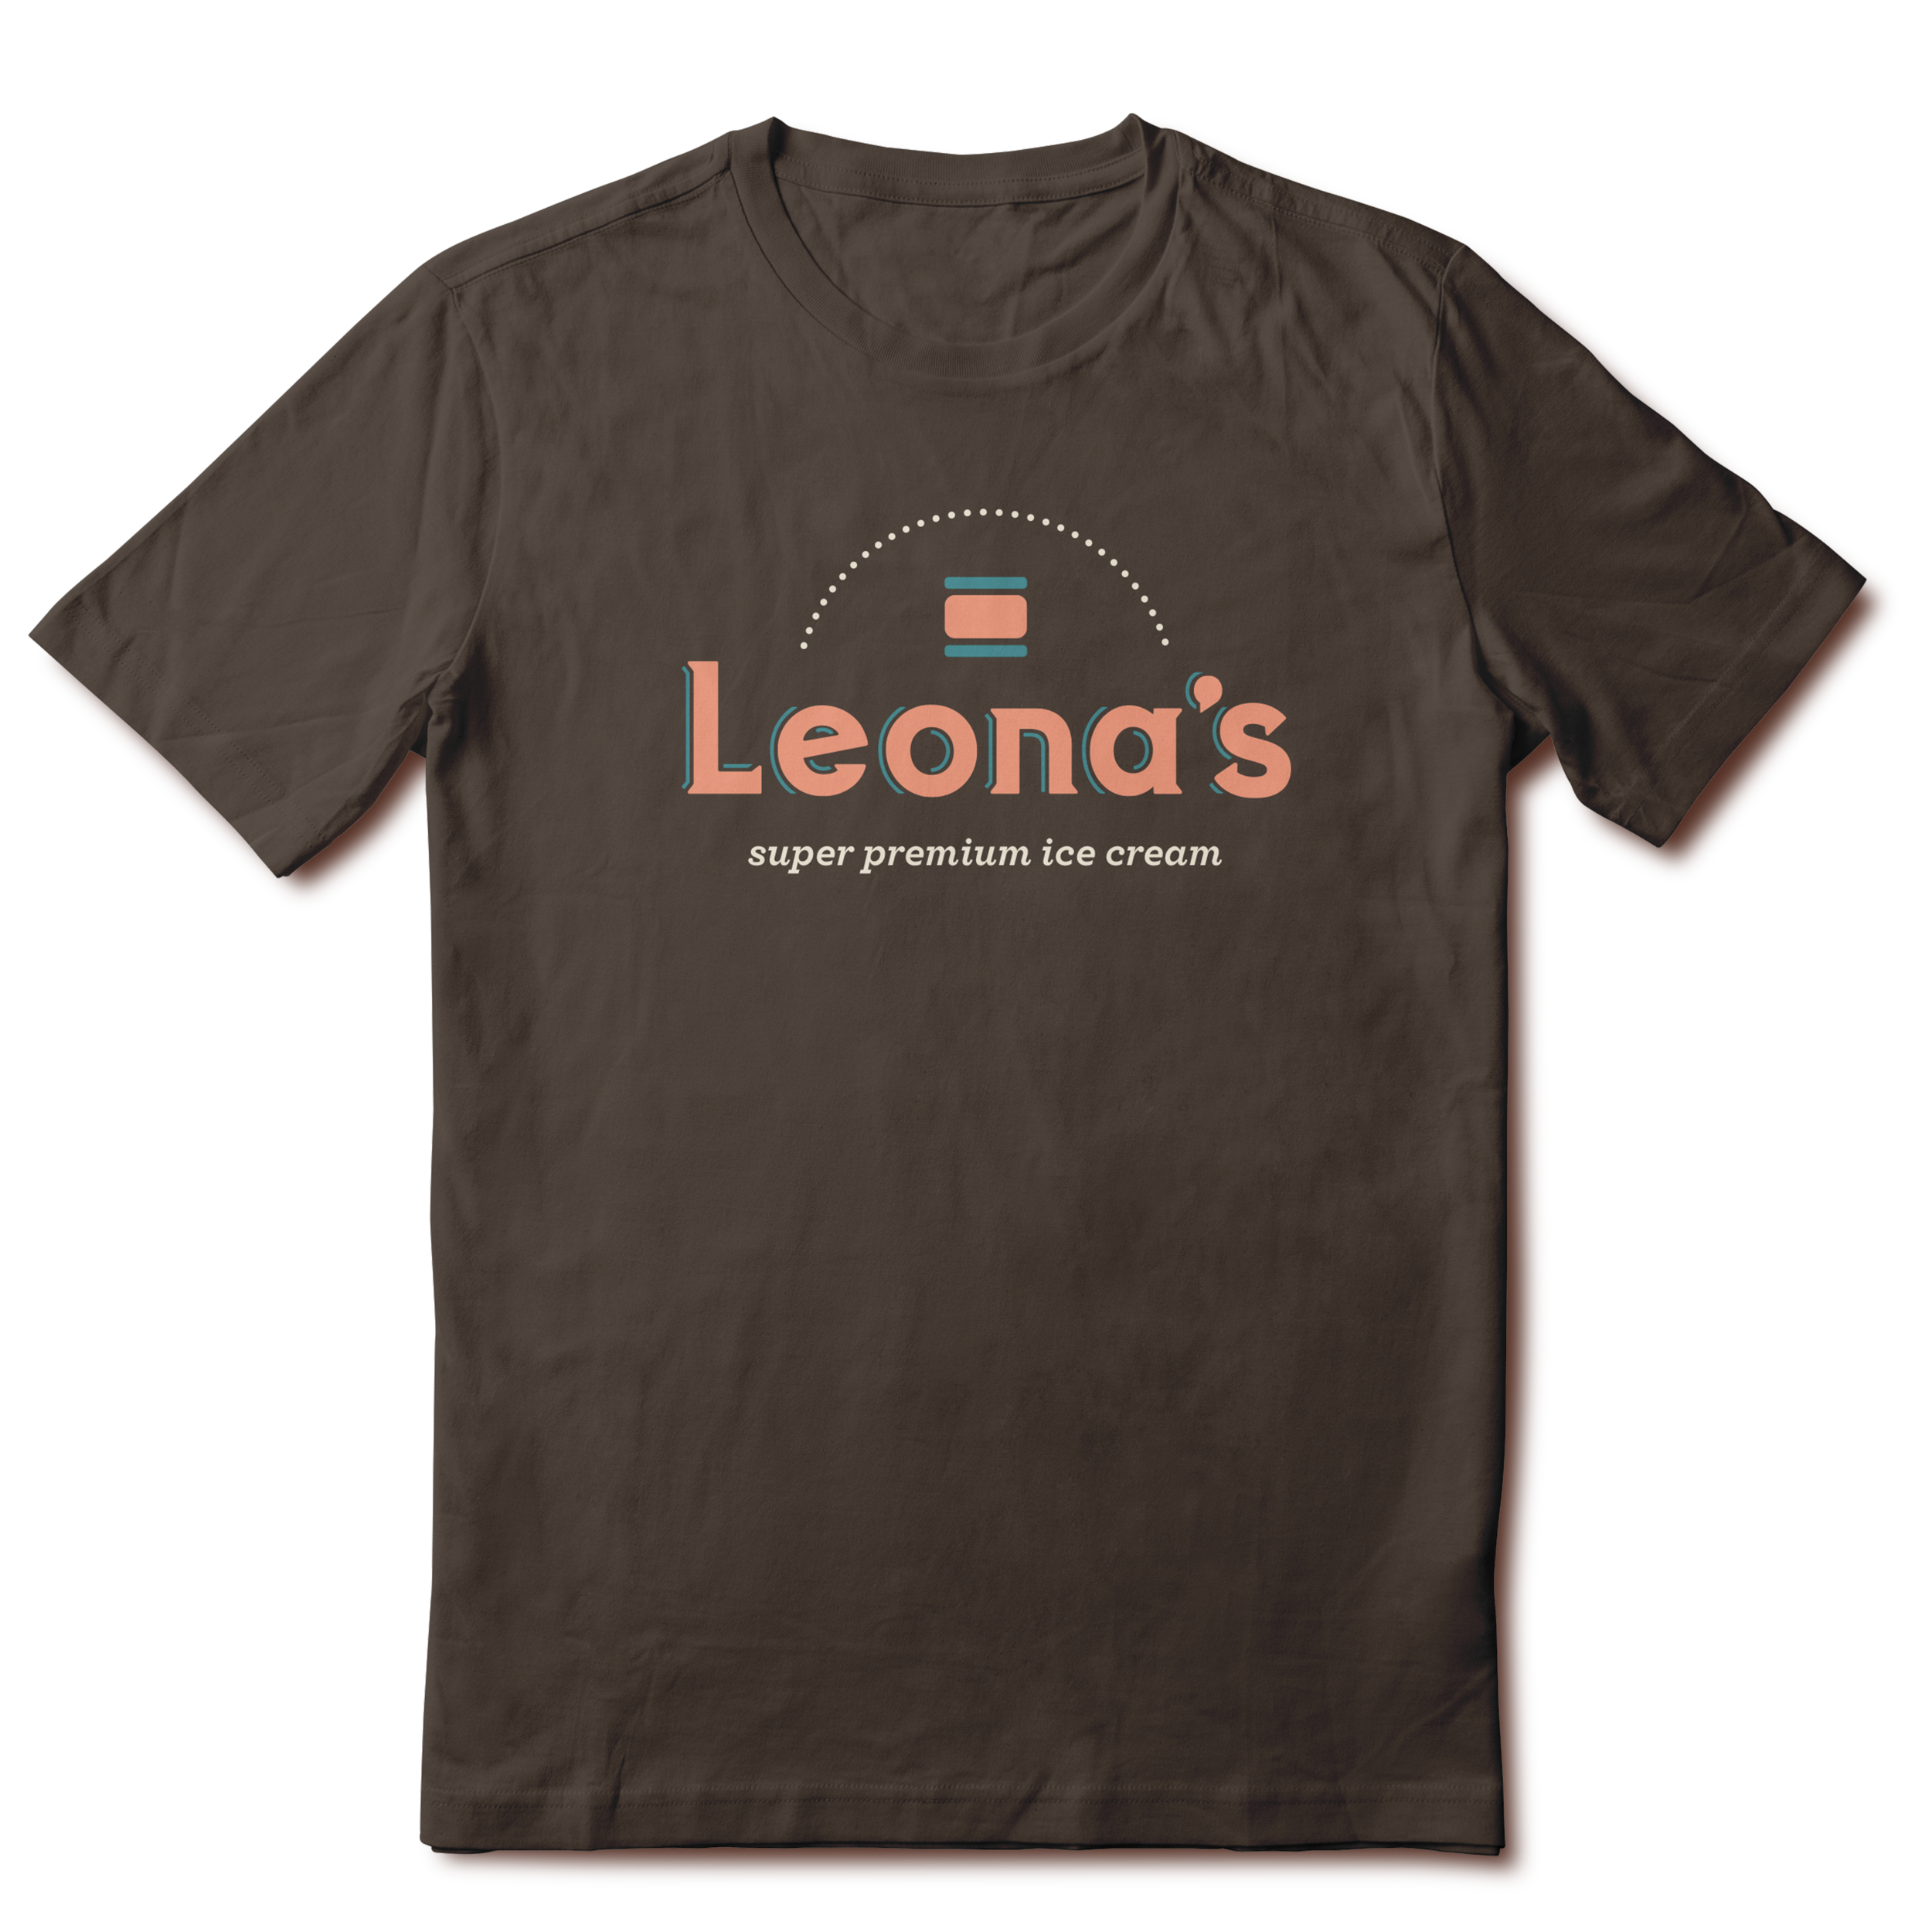 Food Drink_TShirt_Leona's_Bootstrap_Design_Co.png